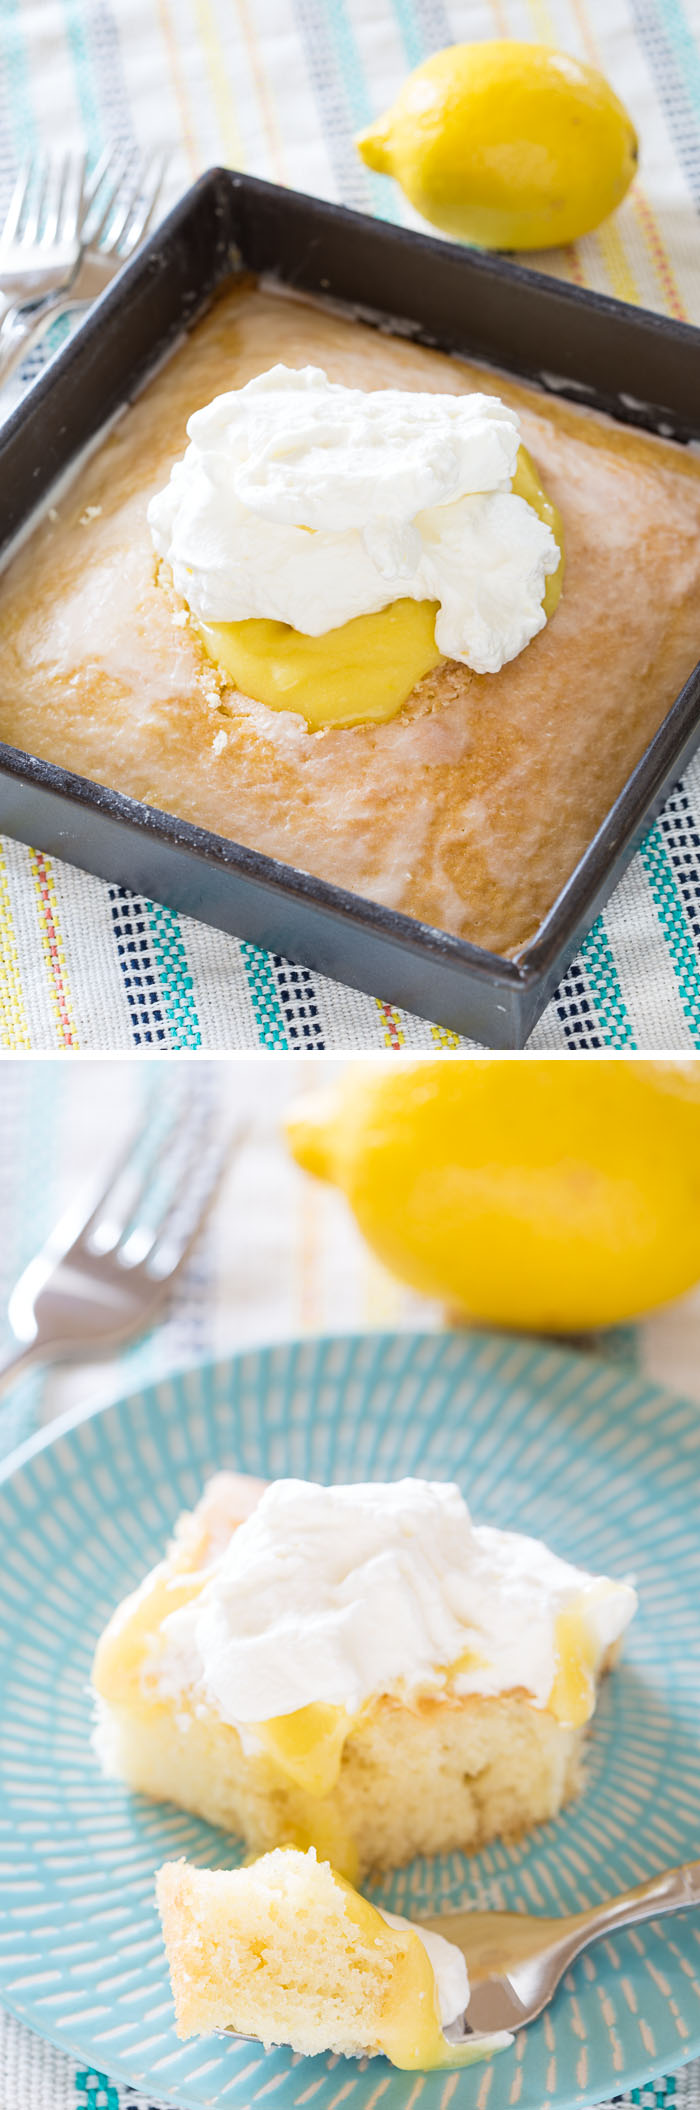 Lemon Curd Cream Cake